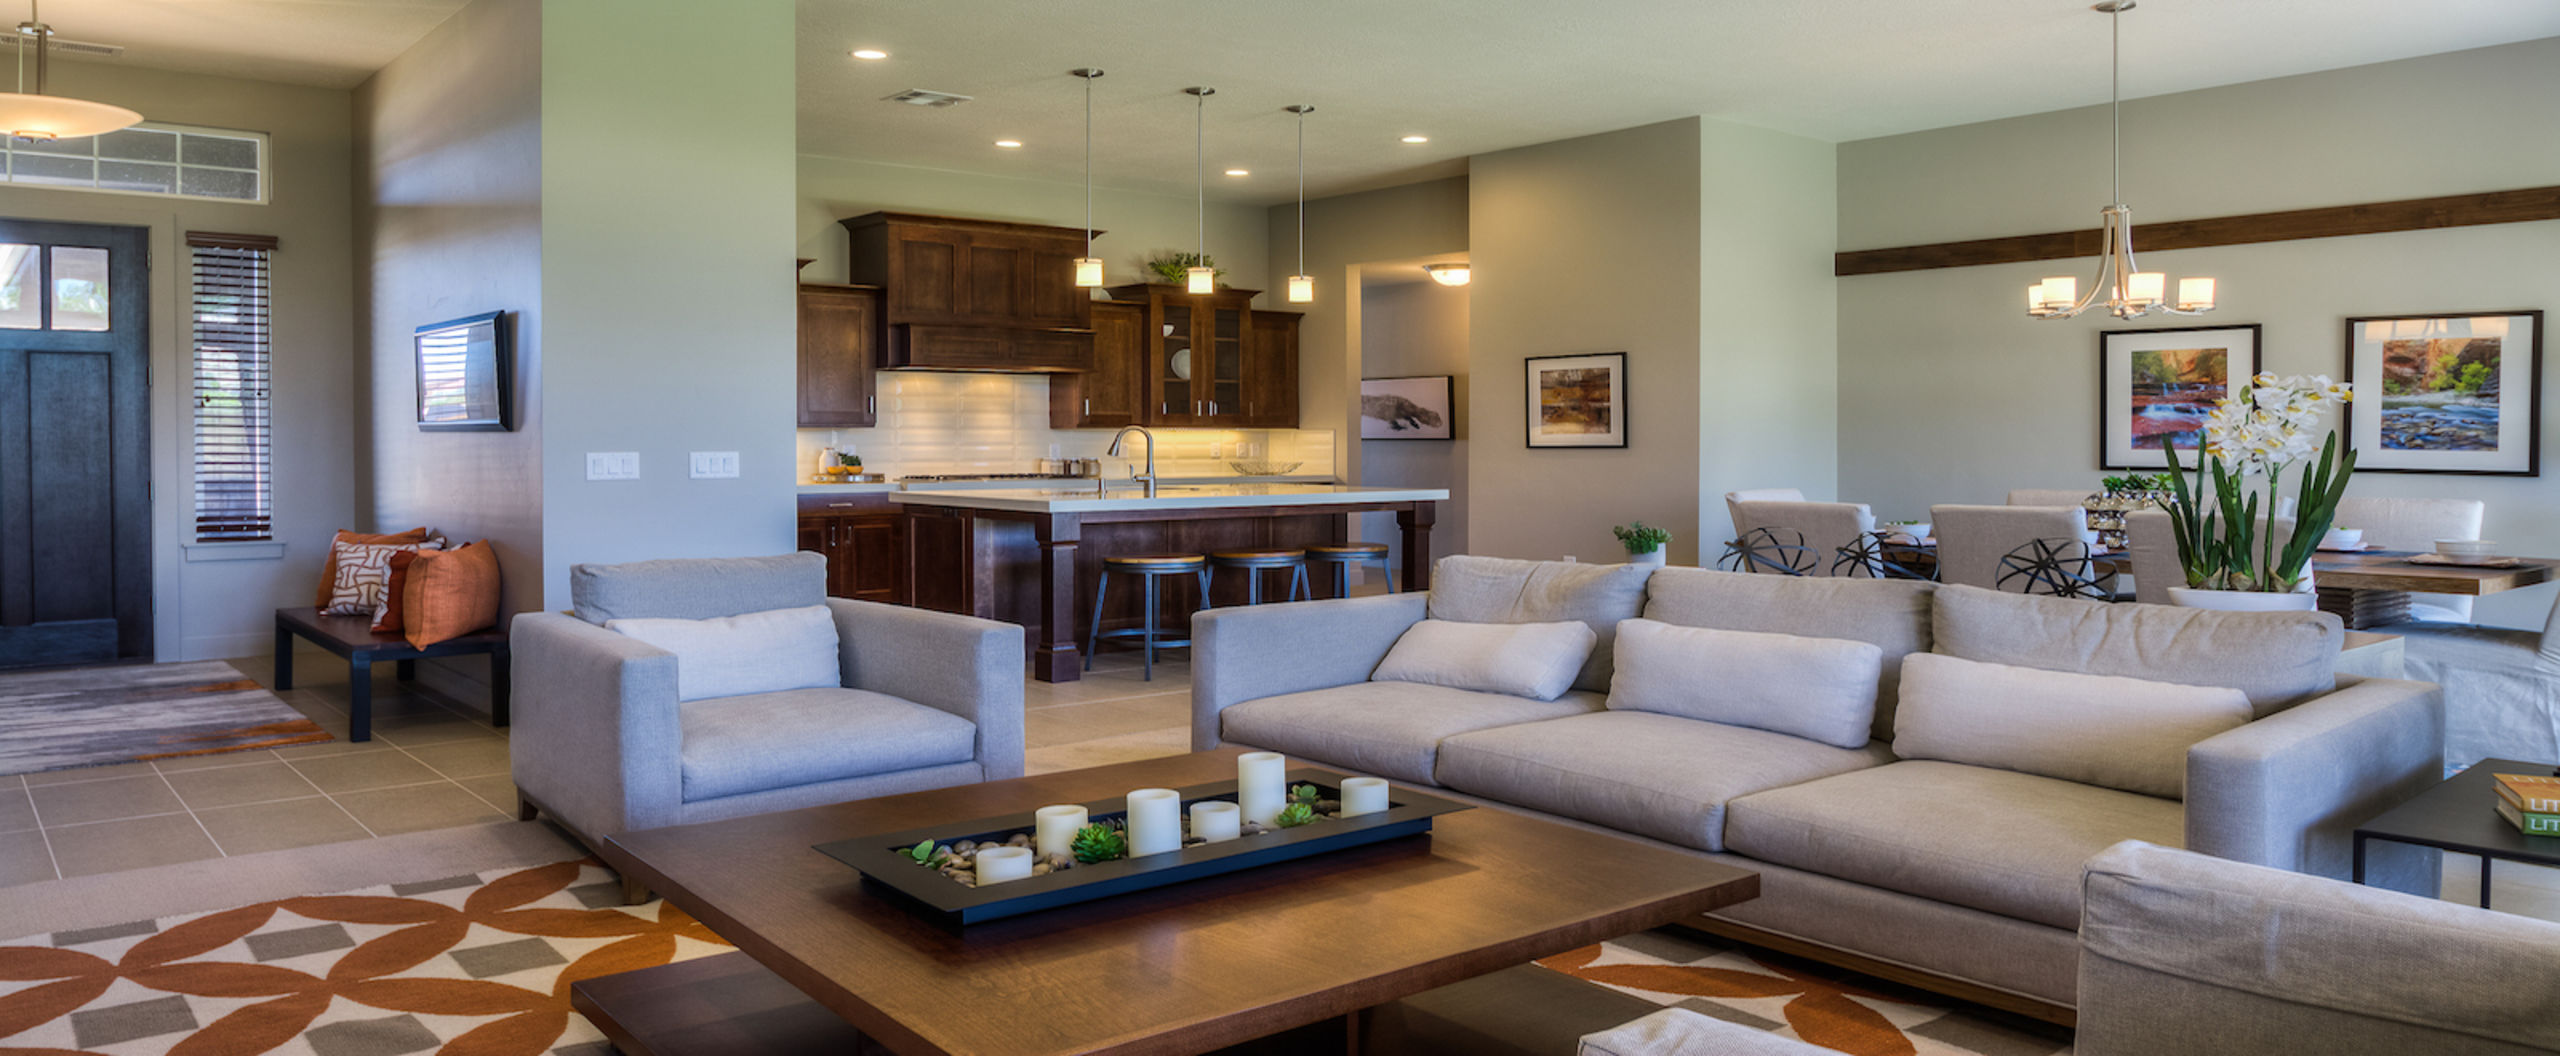 Find a home perfect for entertaining